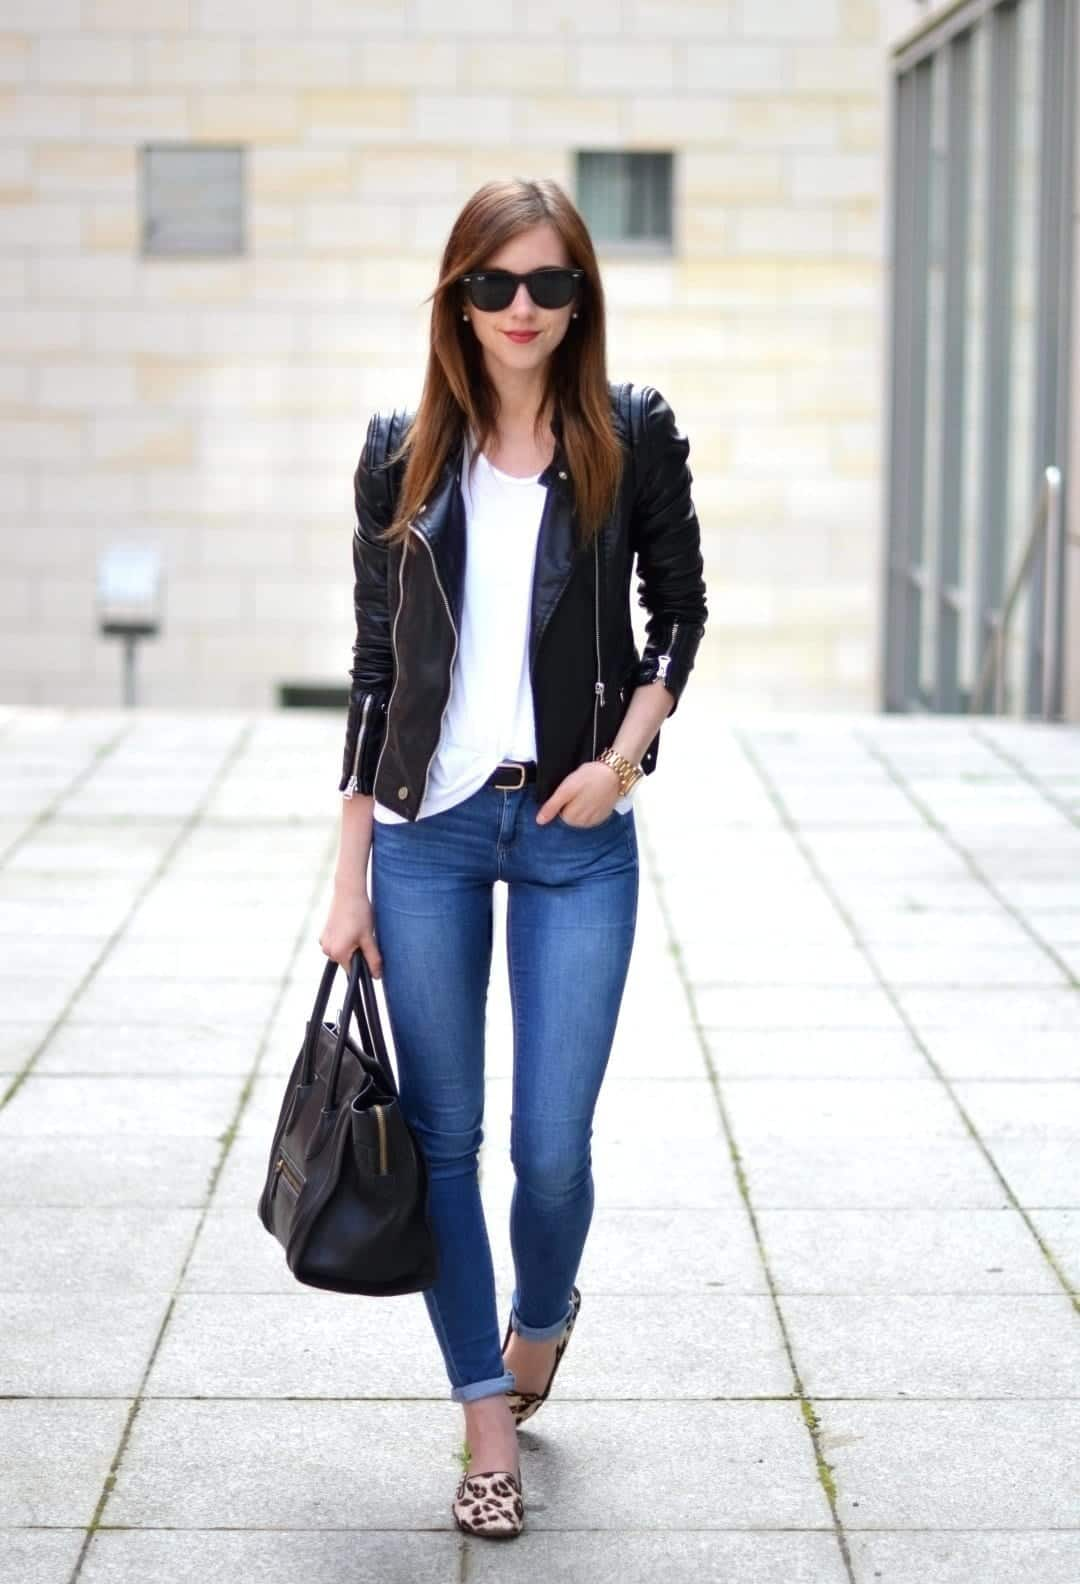 Fashionable Business Attire-15 Casual Work Outfits for Women